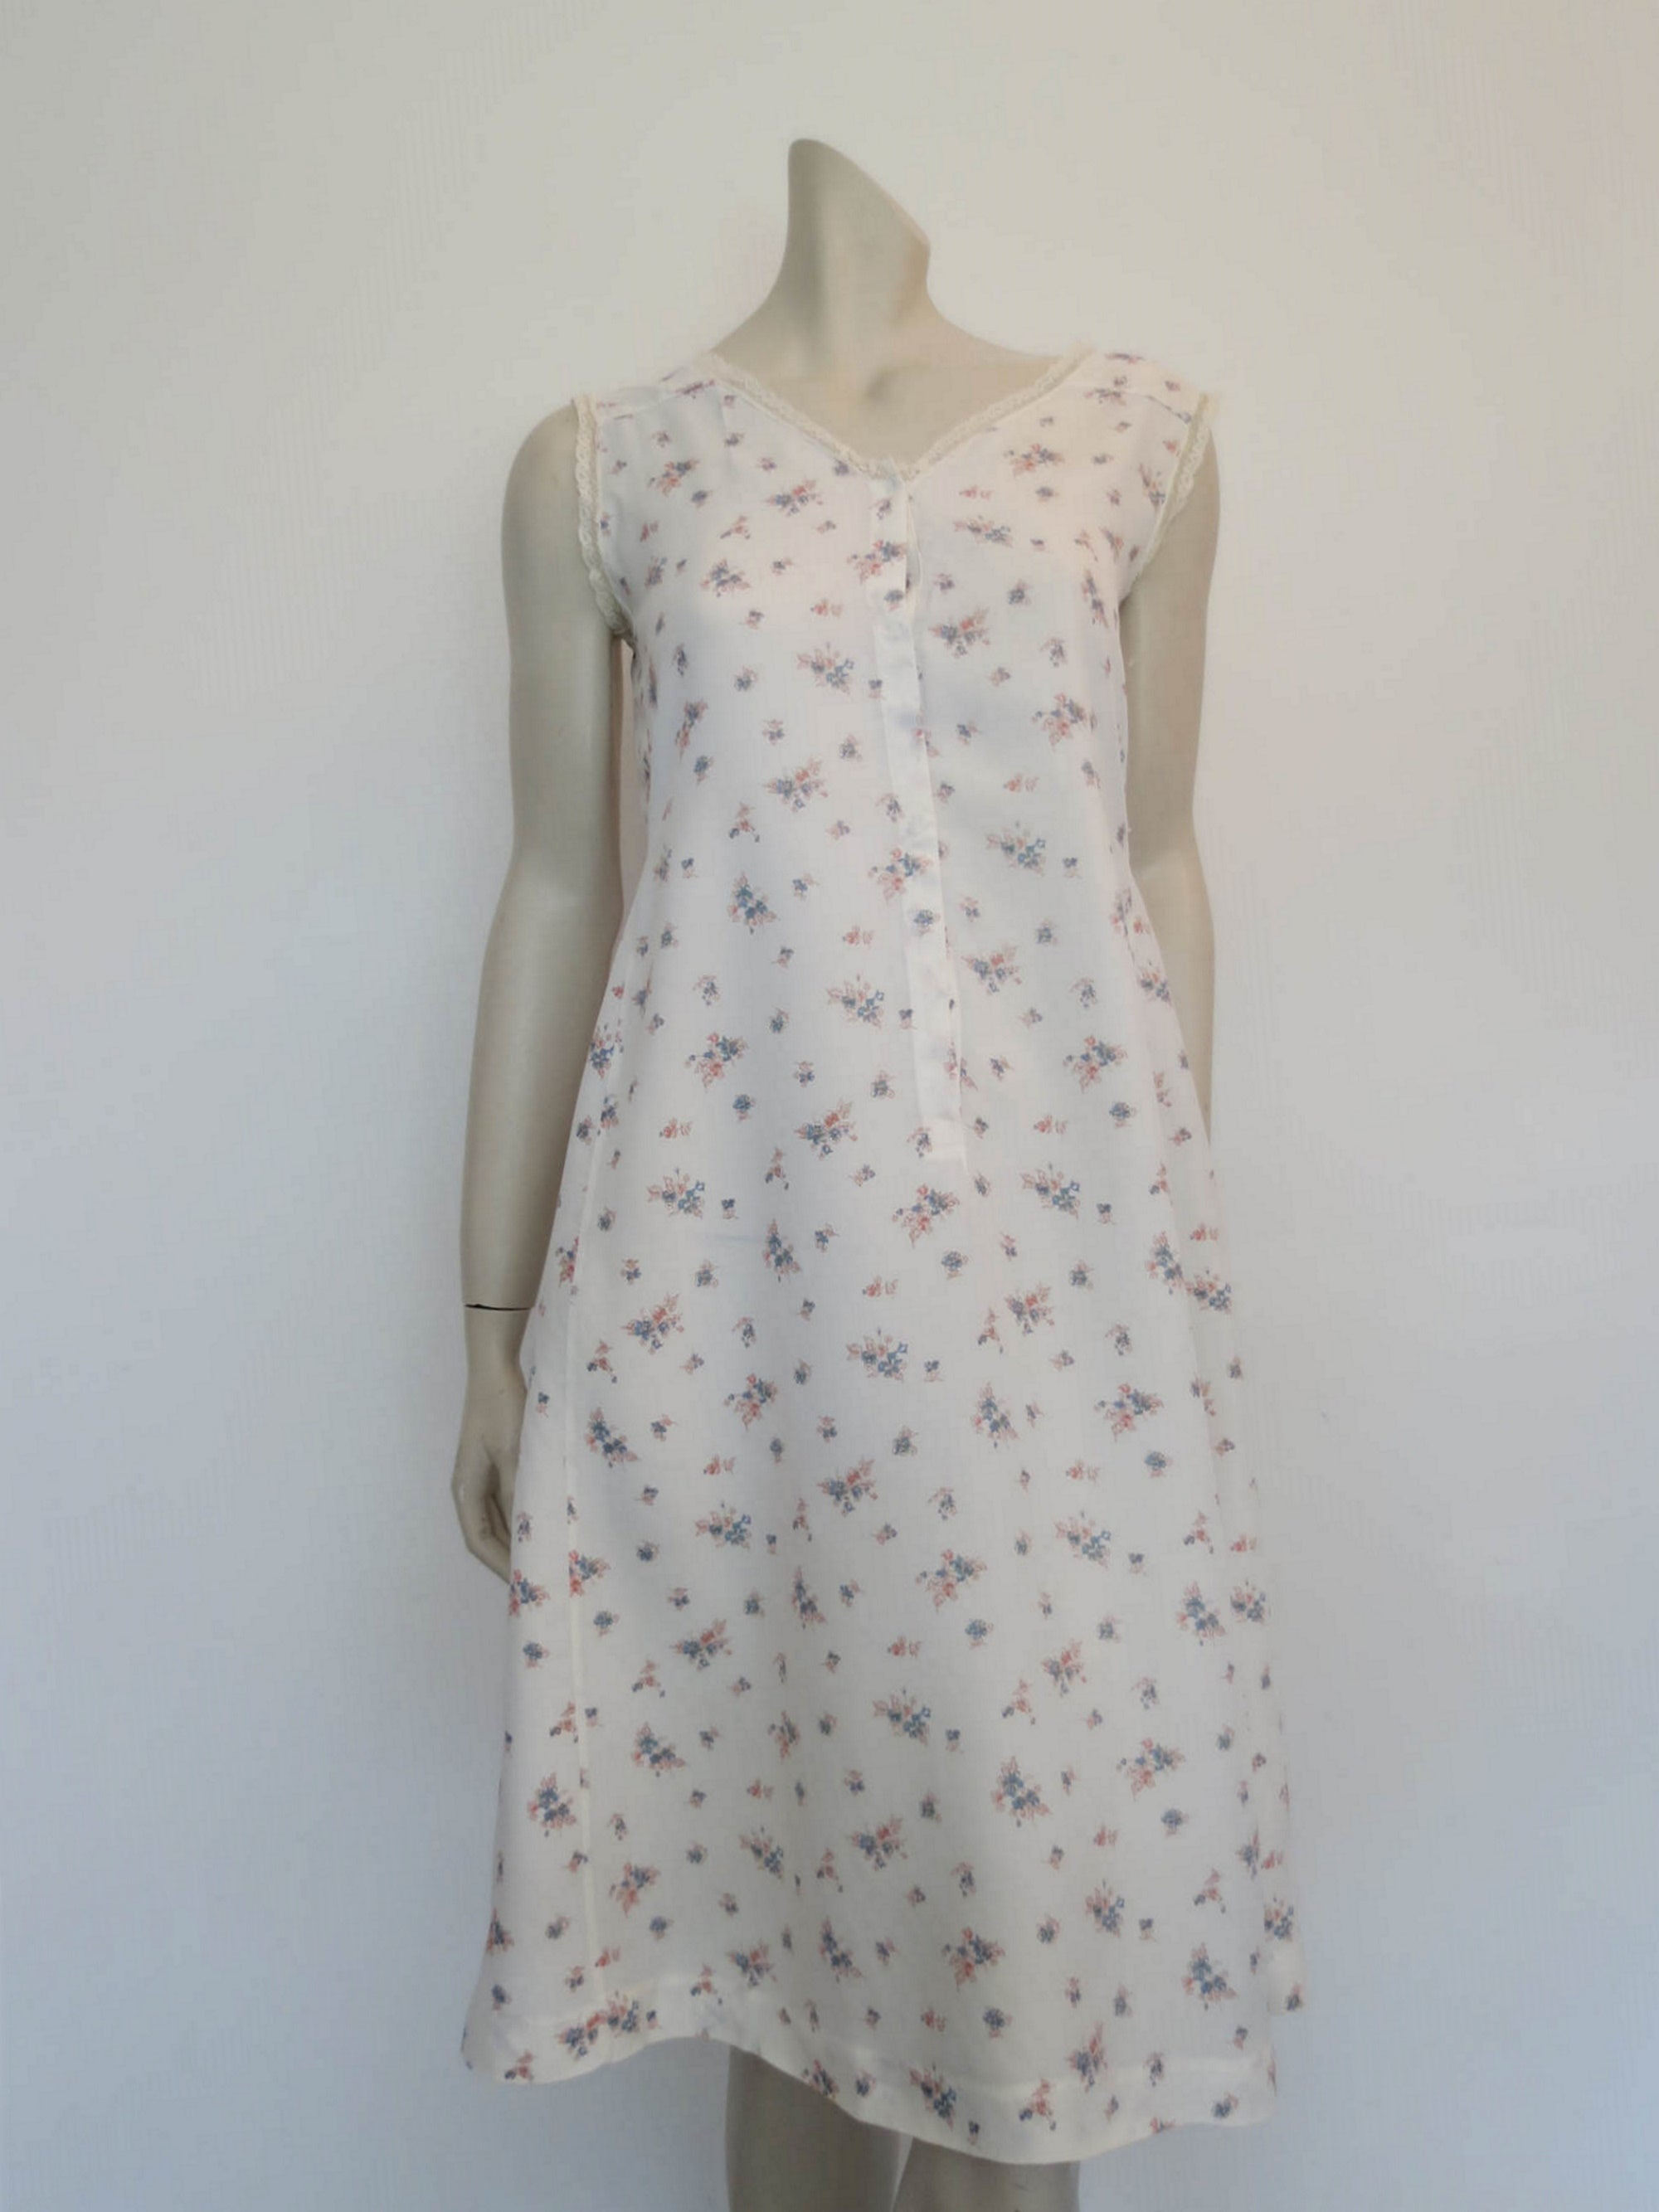 1940s vintage floral maternity nursing nightgown